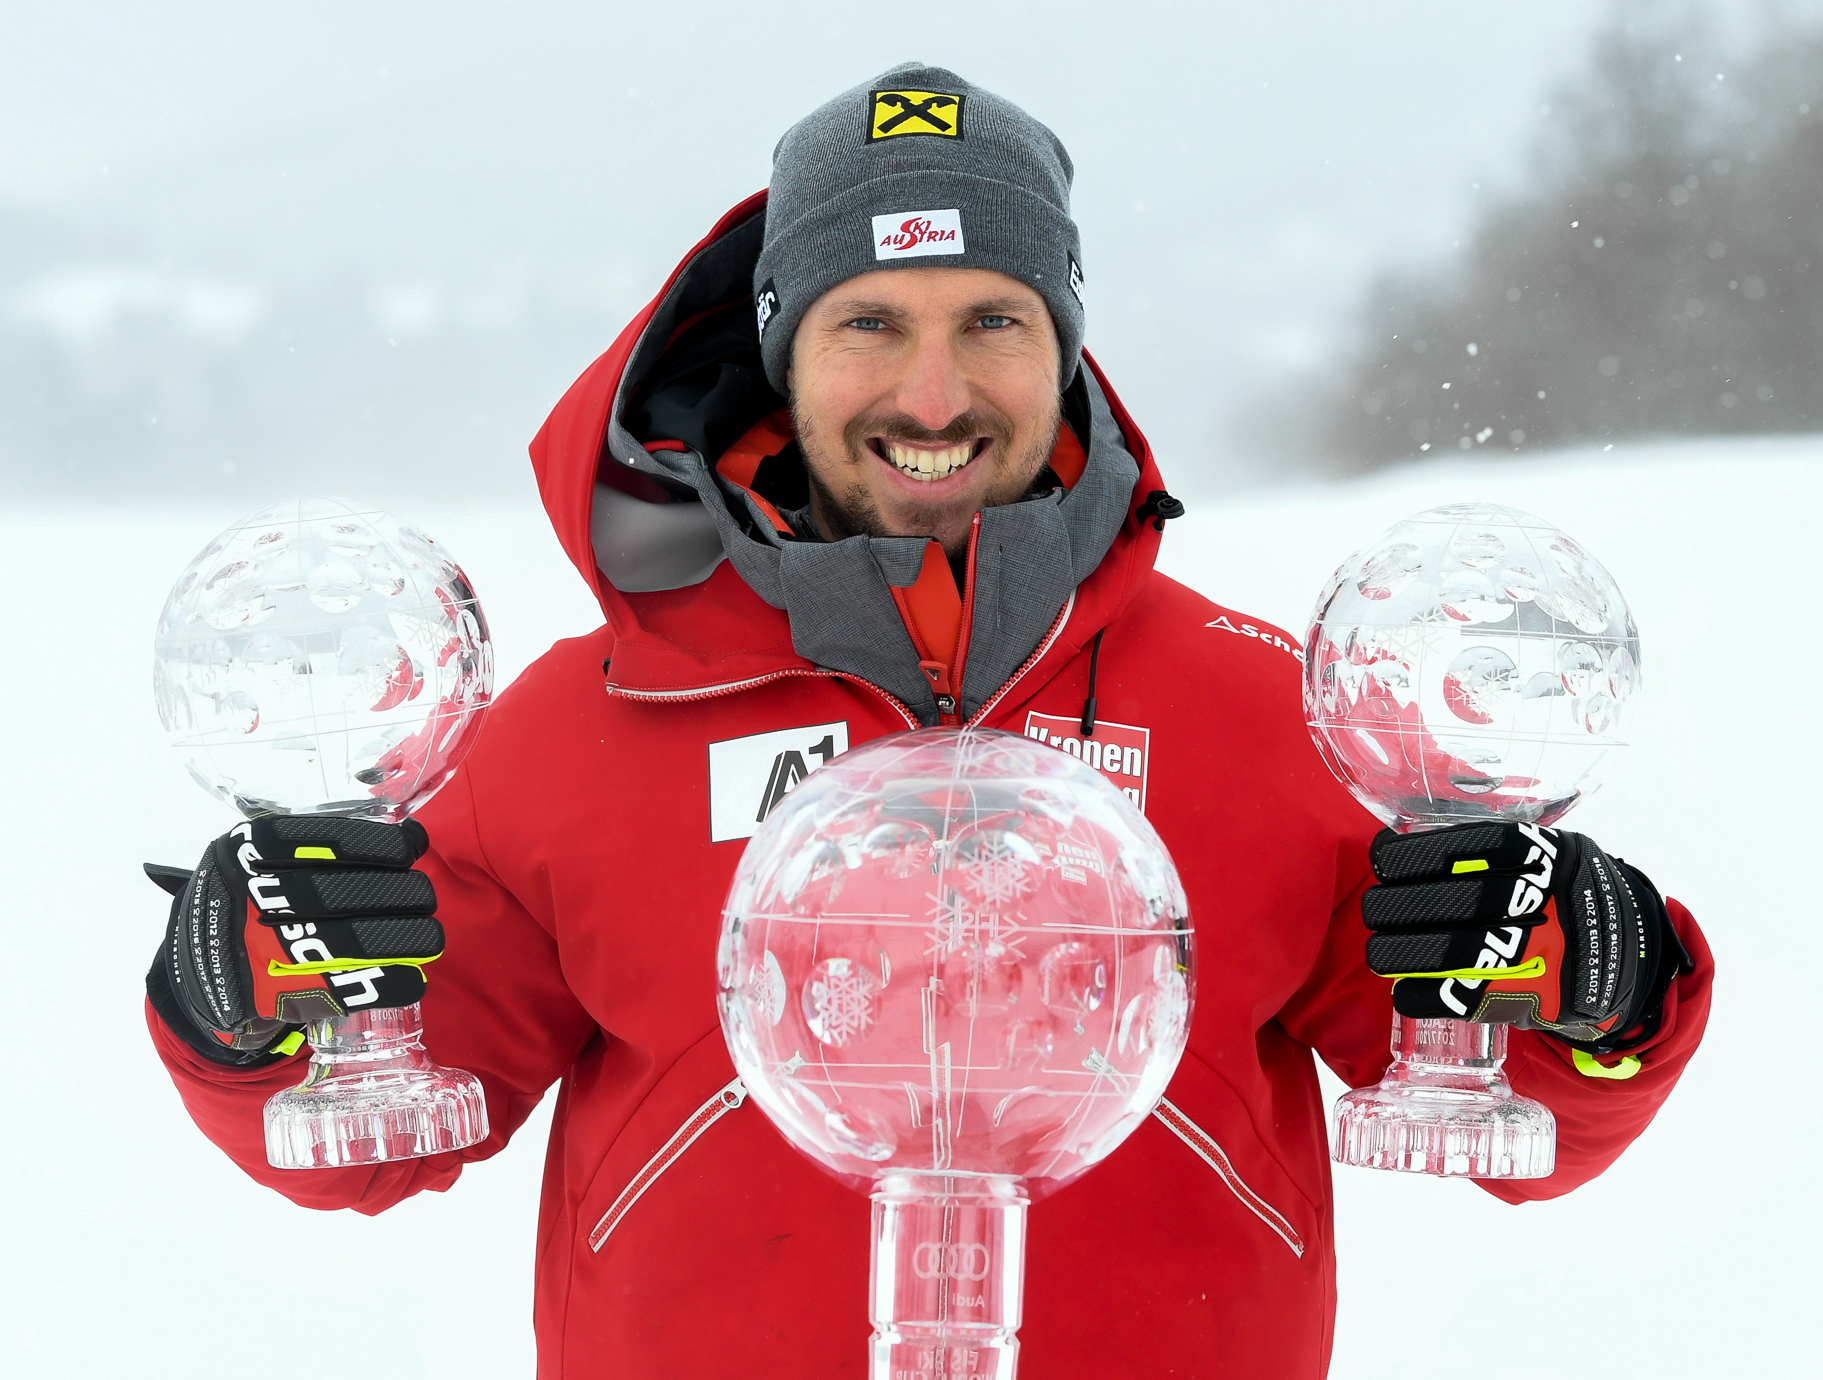 Marcel Hirscher during the Race for the Overall World Cup in Are on March 08i